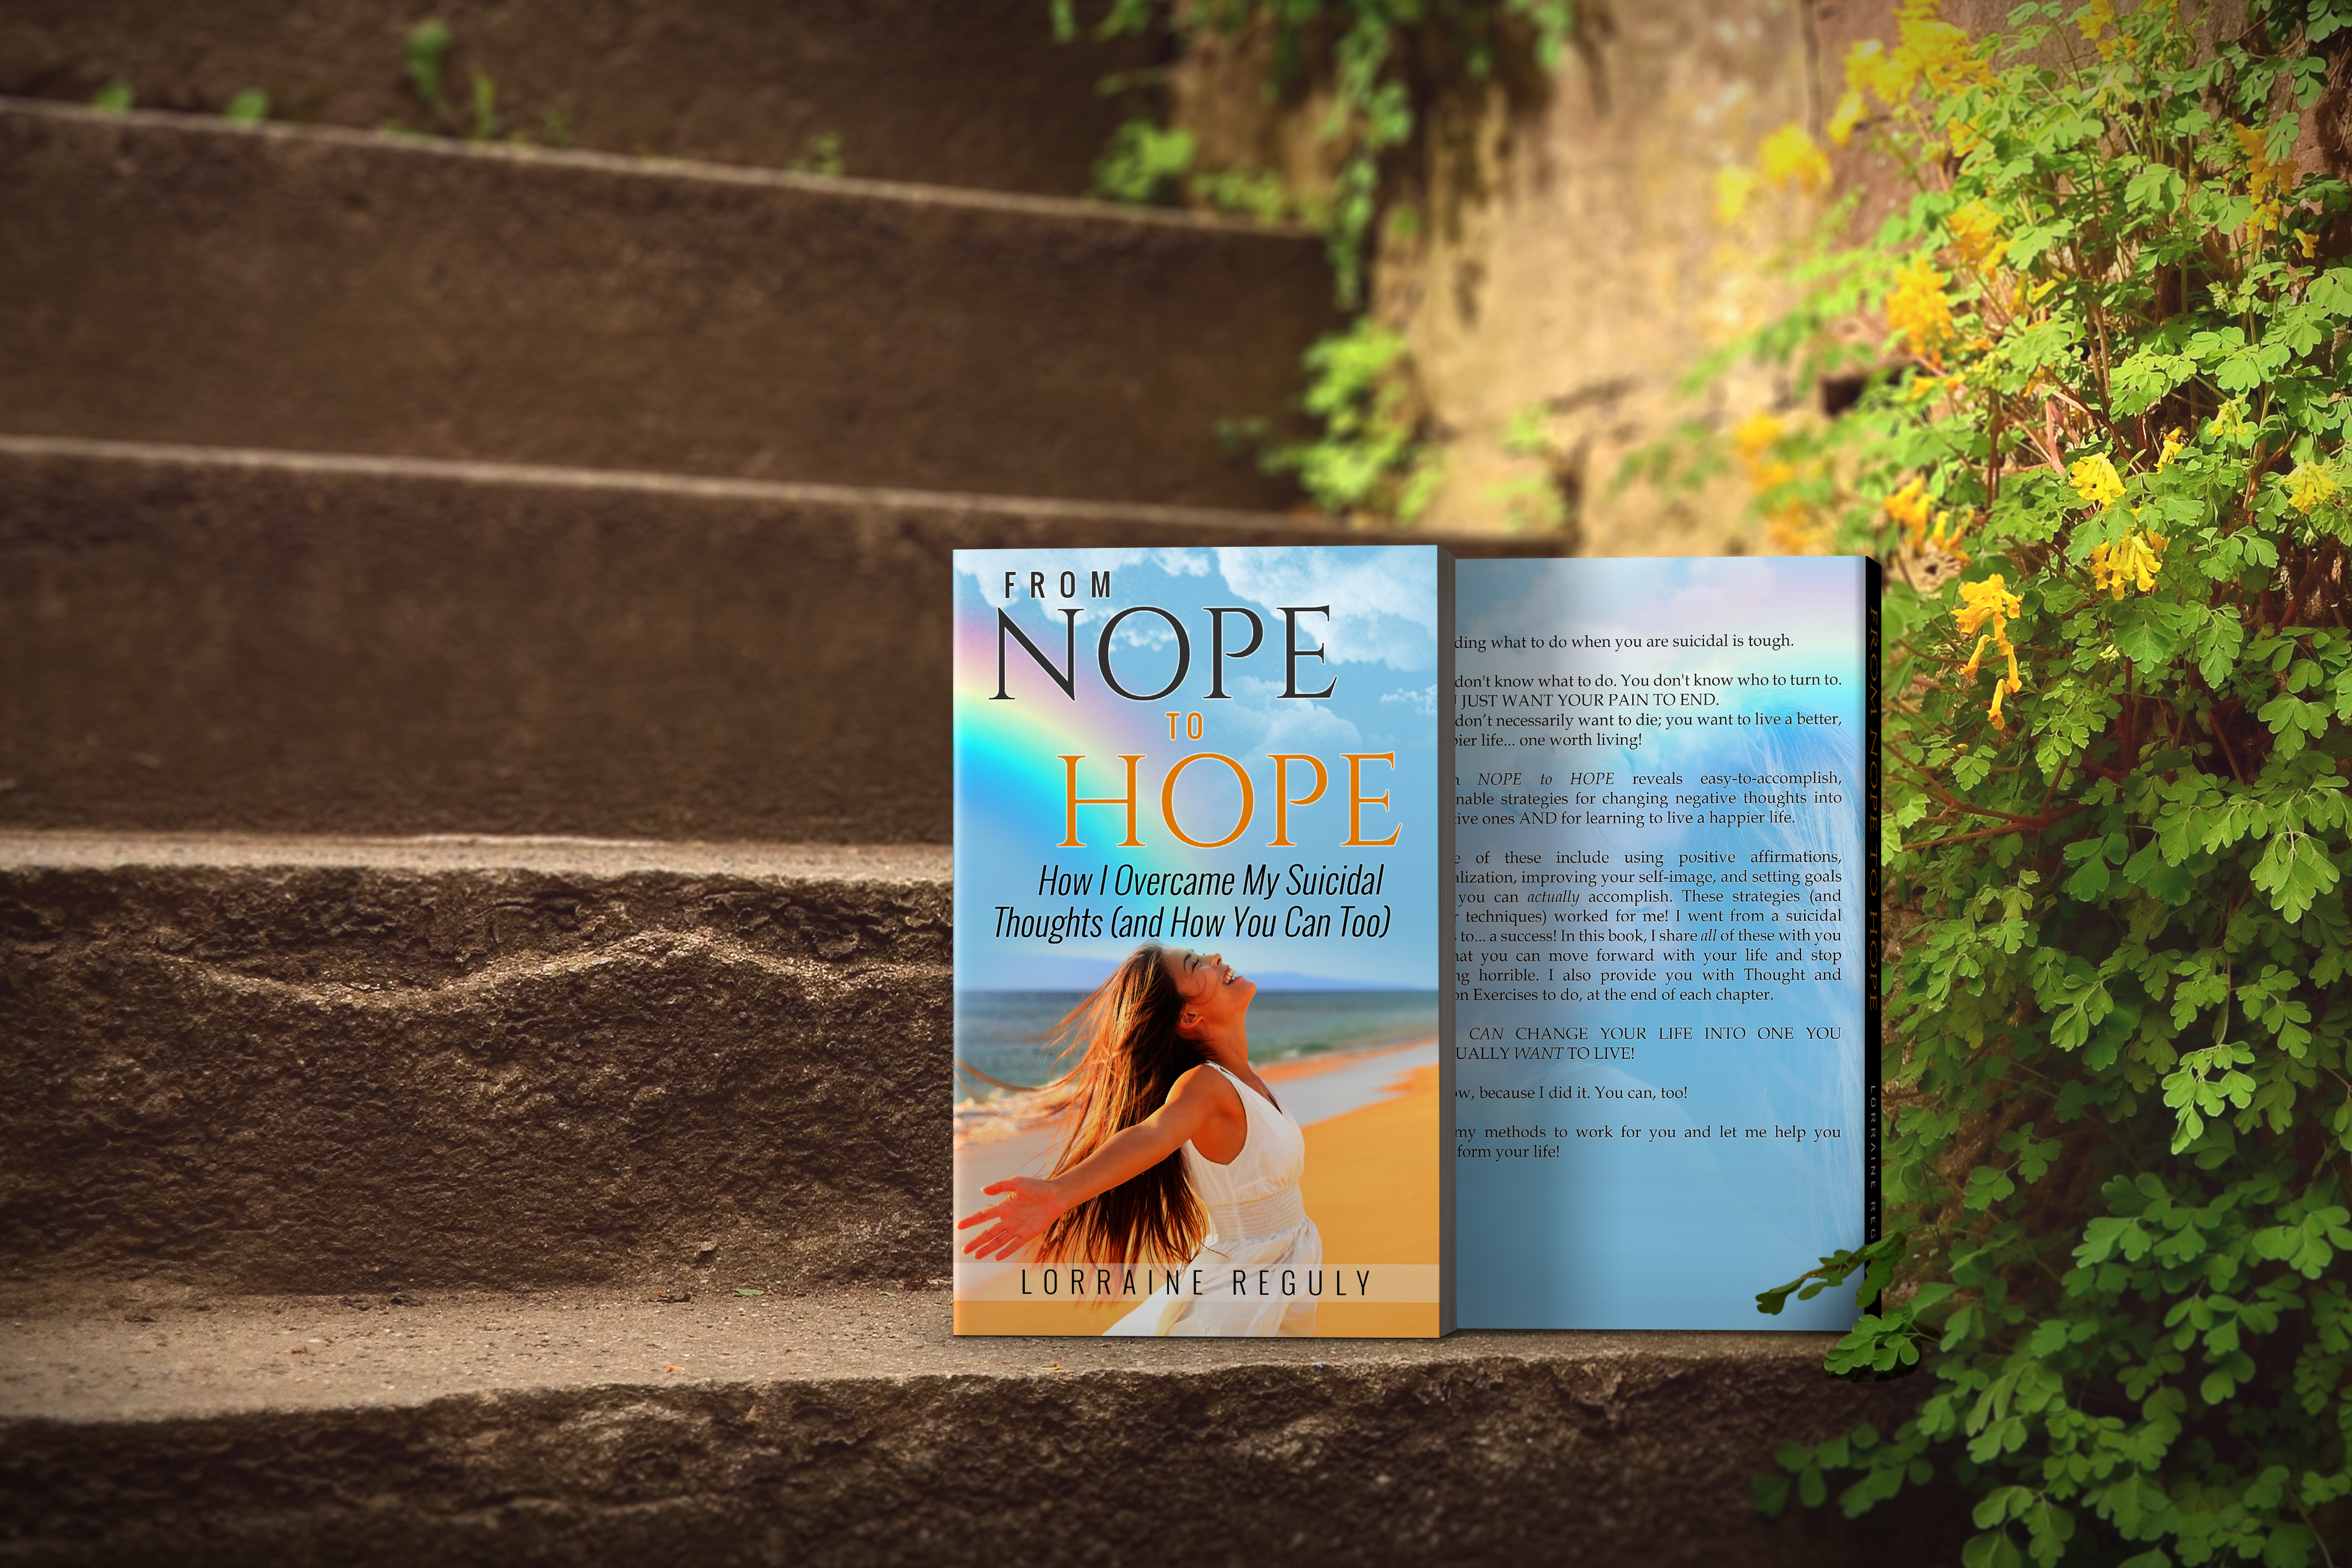 From Nope to Hope books sitting on the steps